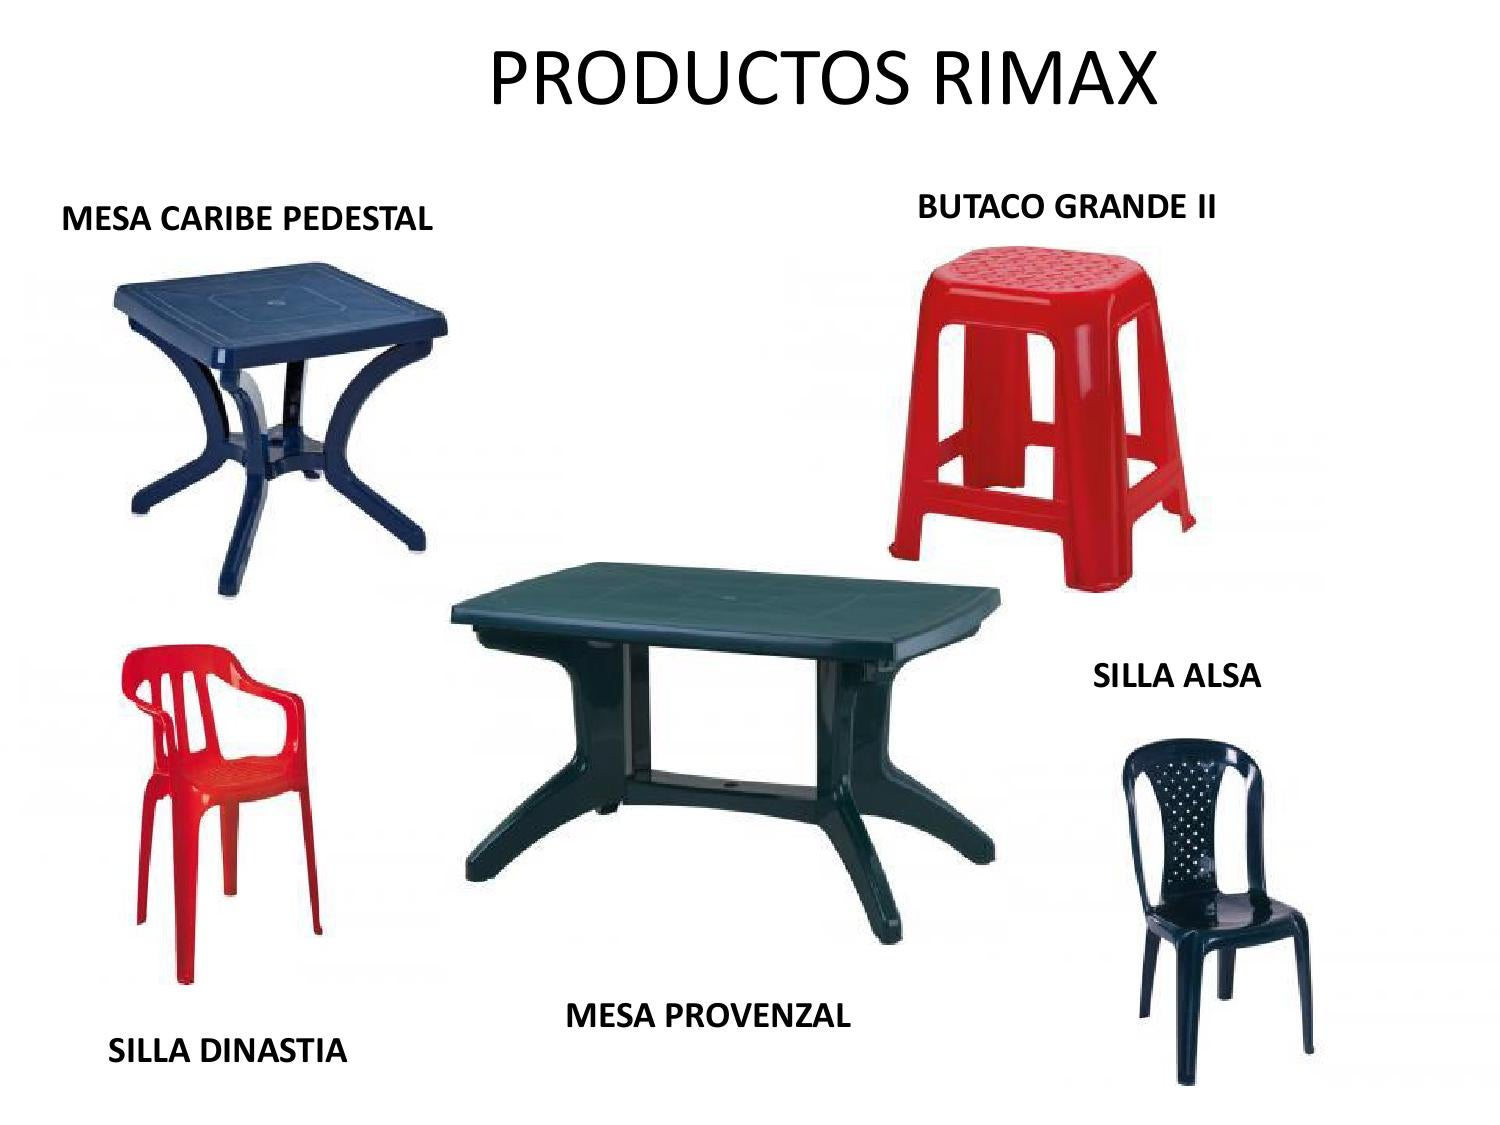 Productos rimax by megalider  Issuu